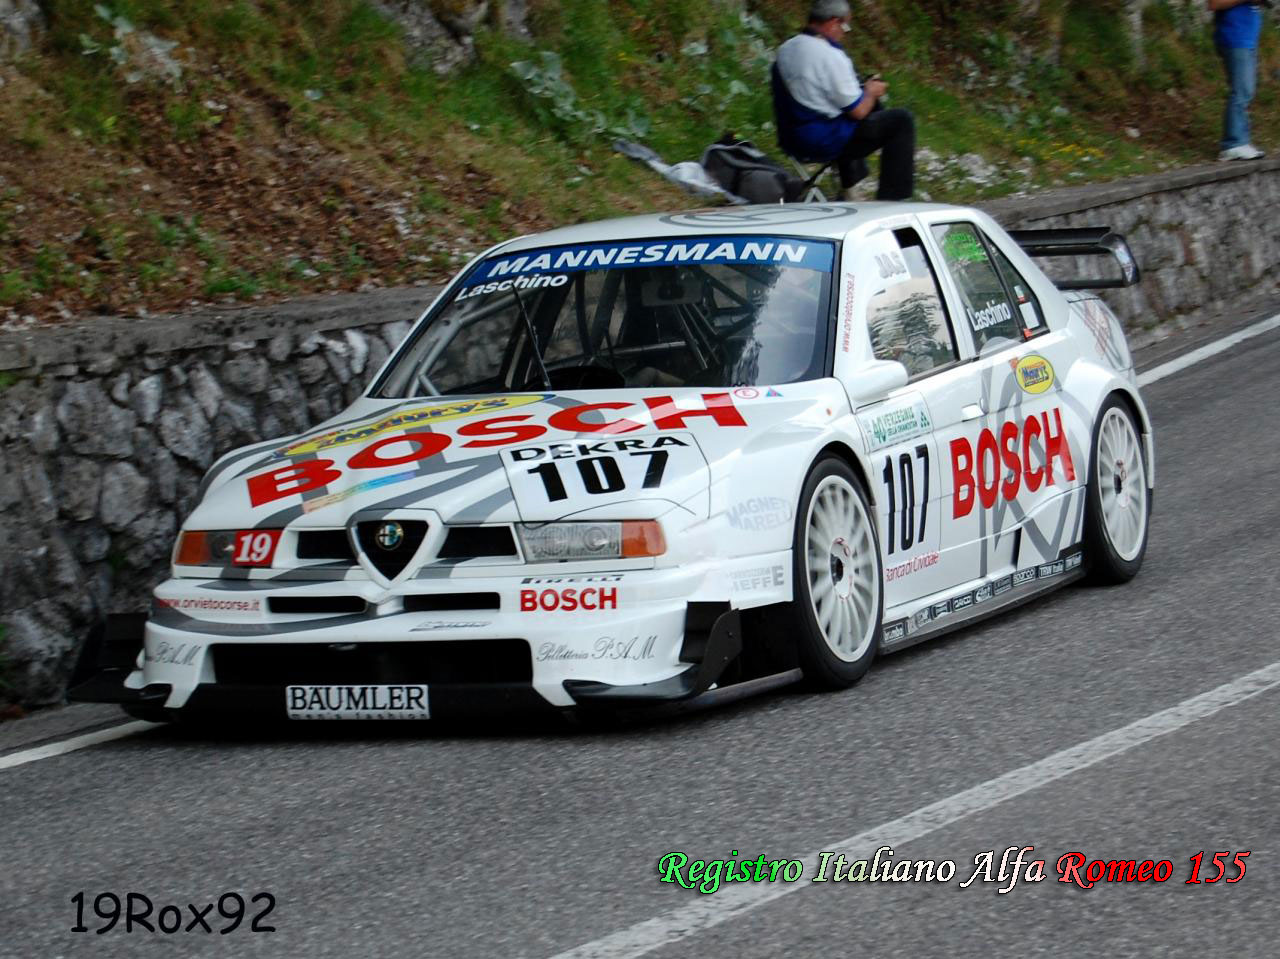 2018 Alfa Romeo 155 2.5 V6 TI DTM photo - 2